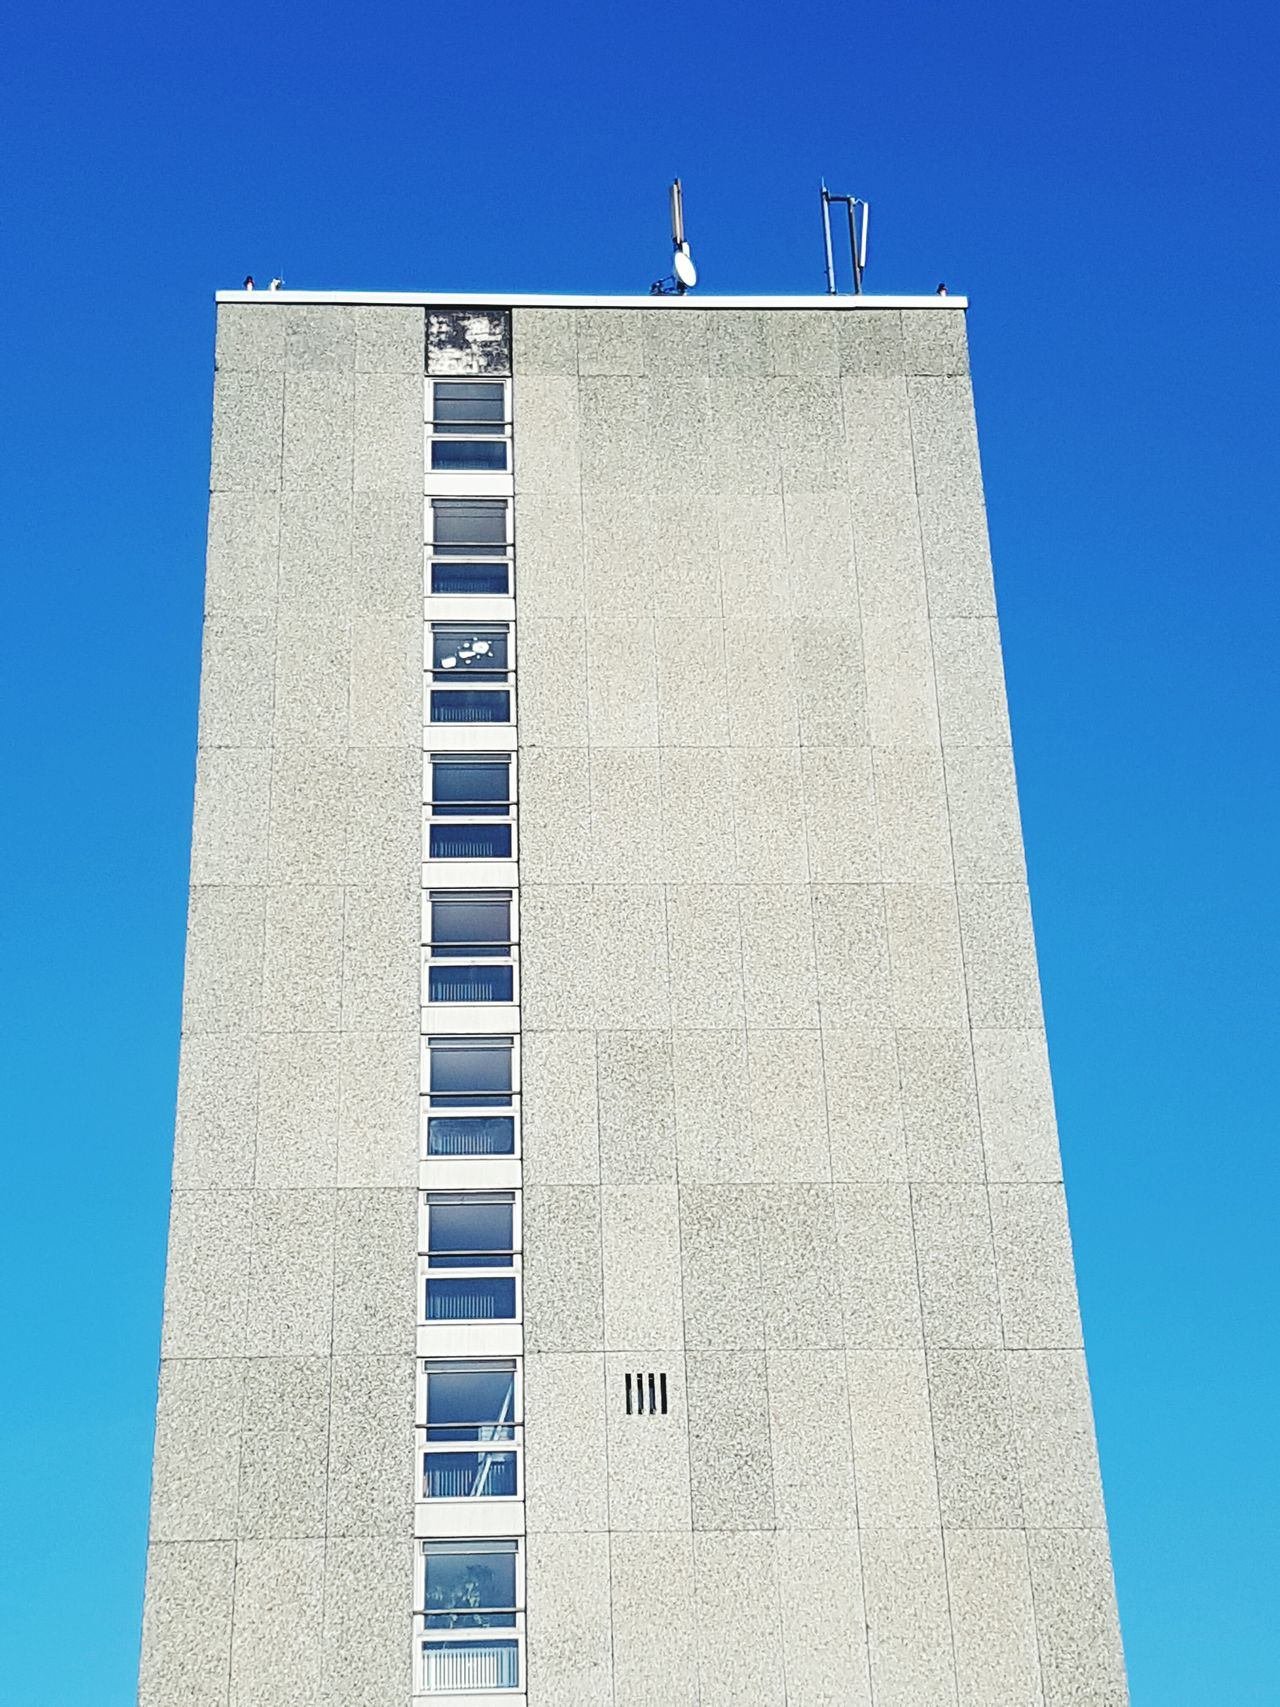 Clear Sky No People Low Angle View Day Outdoors Sky Architecture Hochhaus Plattenbau ThatsMe Helloworld